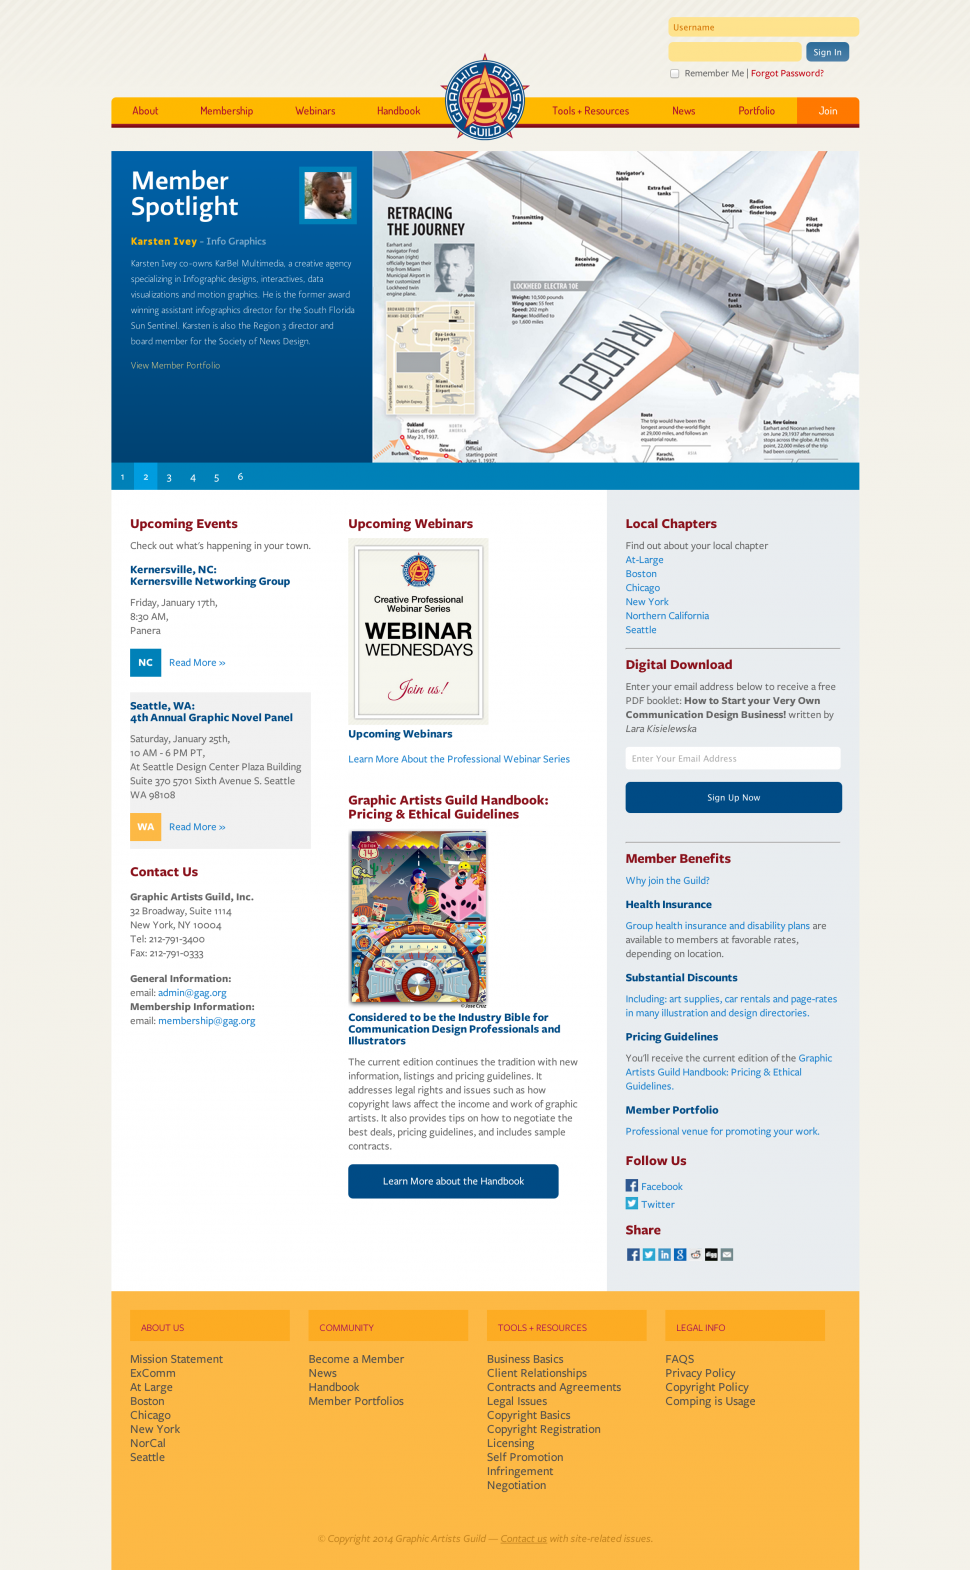 A look at the homepage of the site